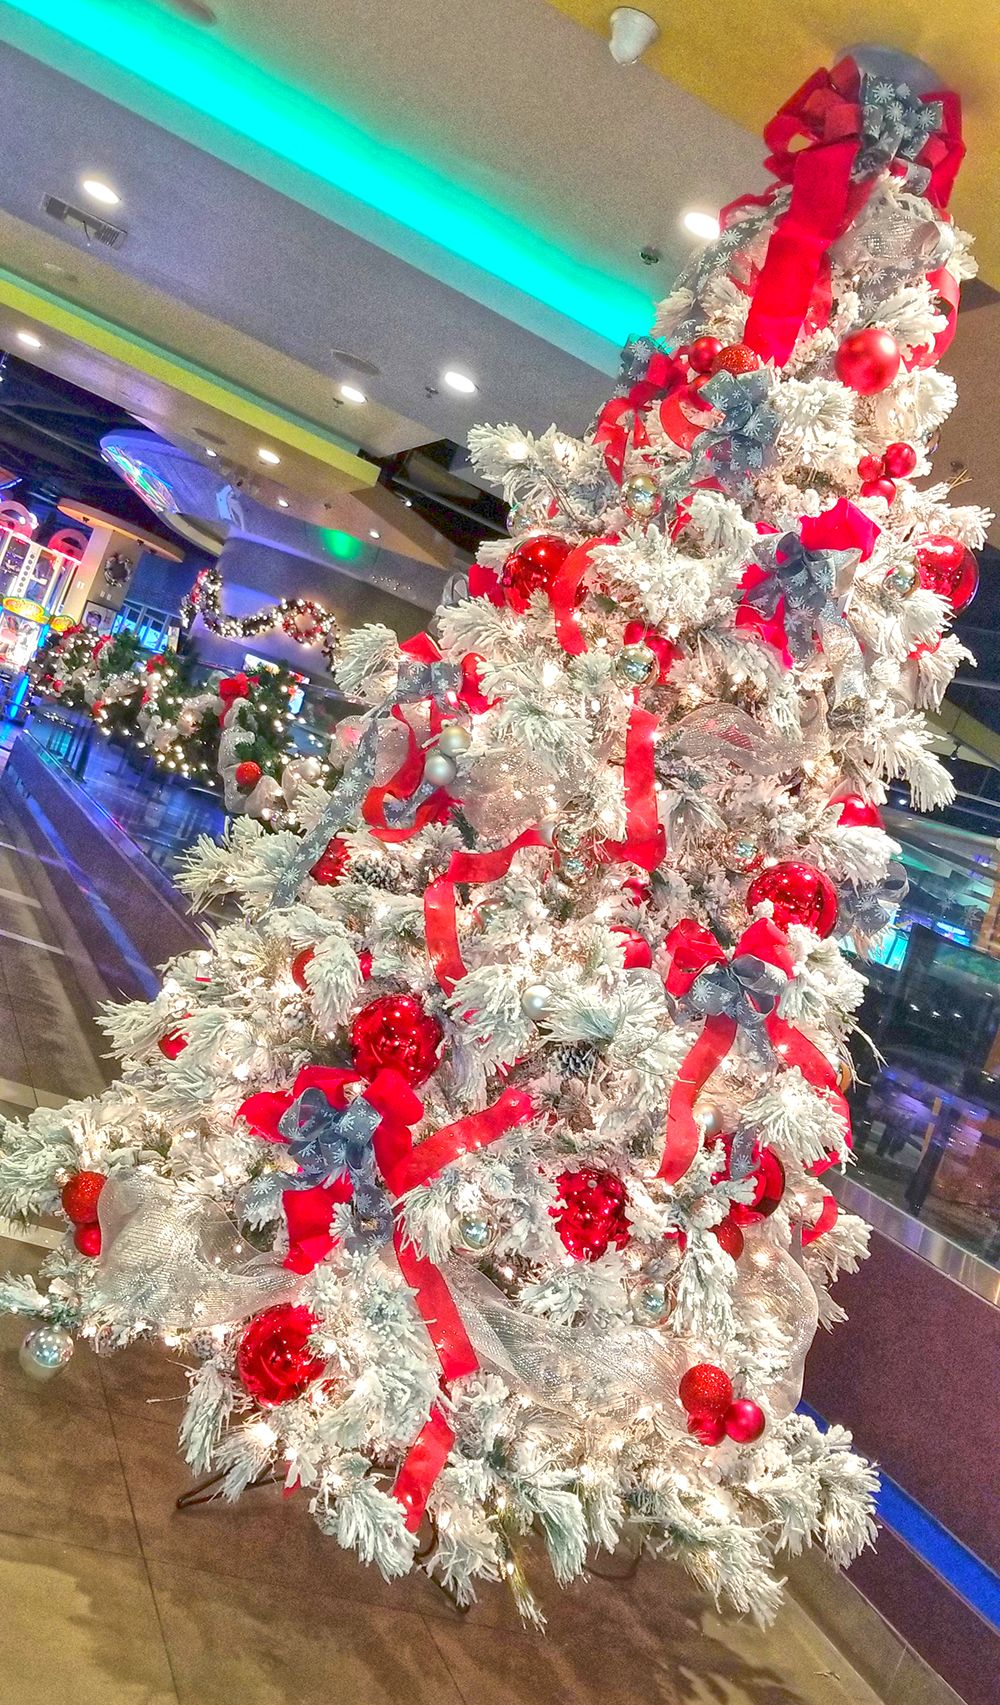 Private Events Book Early Our Holiday Reservations Go Fast E Mail Info Xlanesla Com Or Speak To A Manager On Duty Holiday Christmas Wreaths Holiday Decor